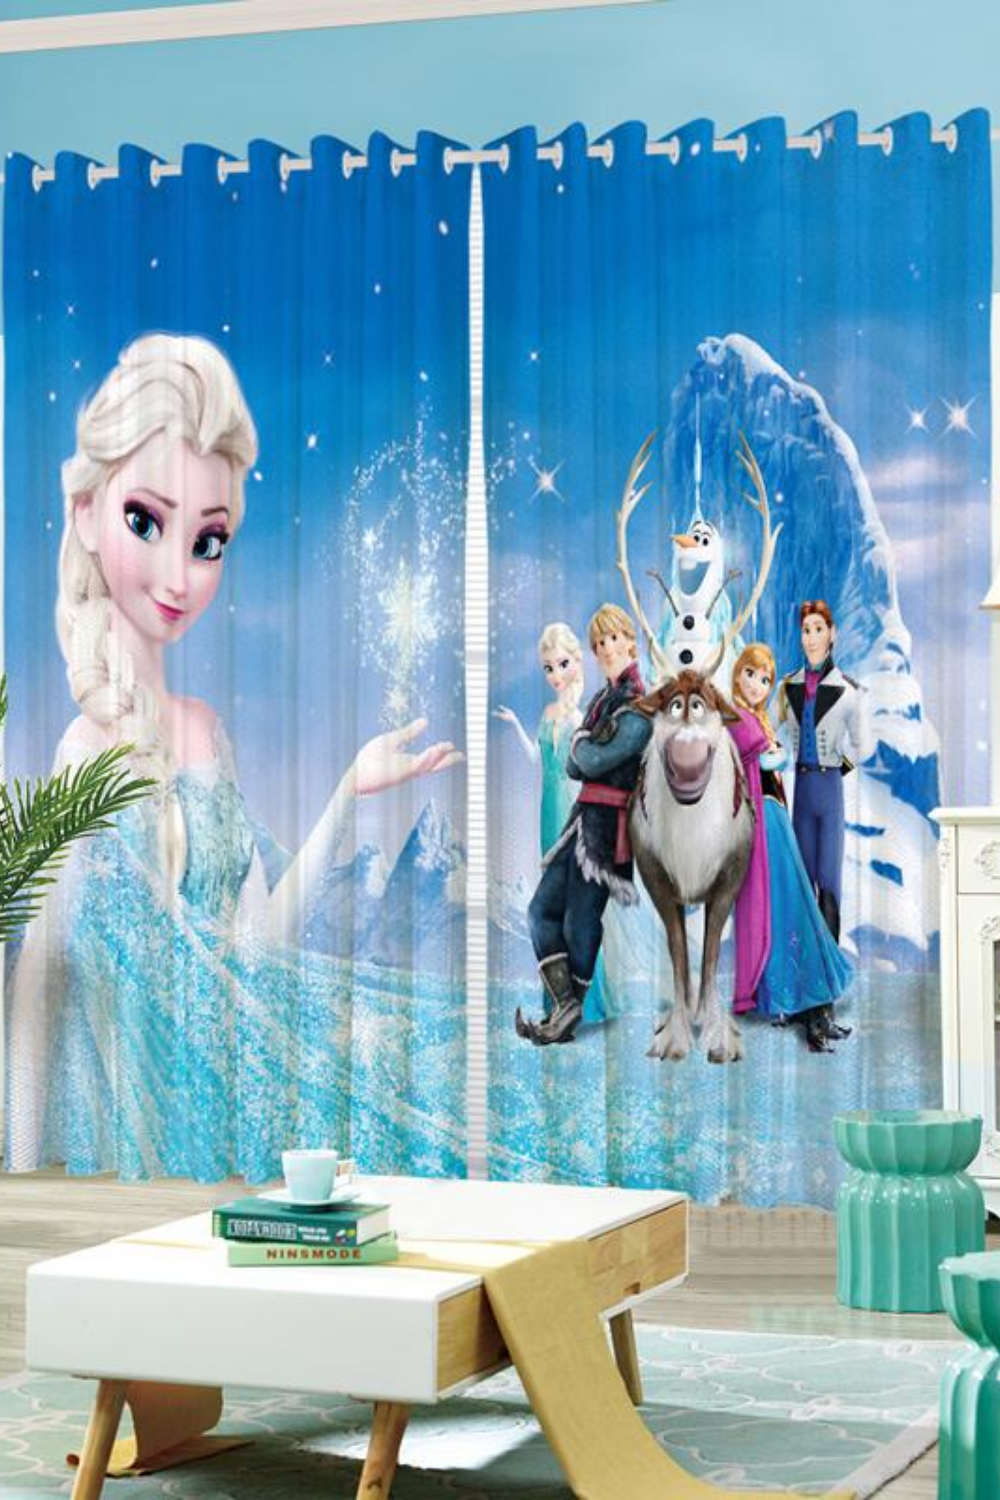 Disney Frozen Elsa 3d Digital High Definition Bright Printed Curtains For Kids Room In 2020 Kids Curtains Kids Room Disney Frozen